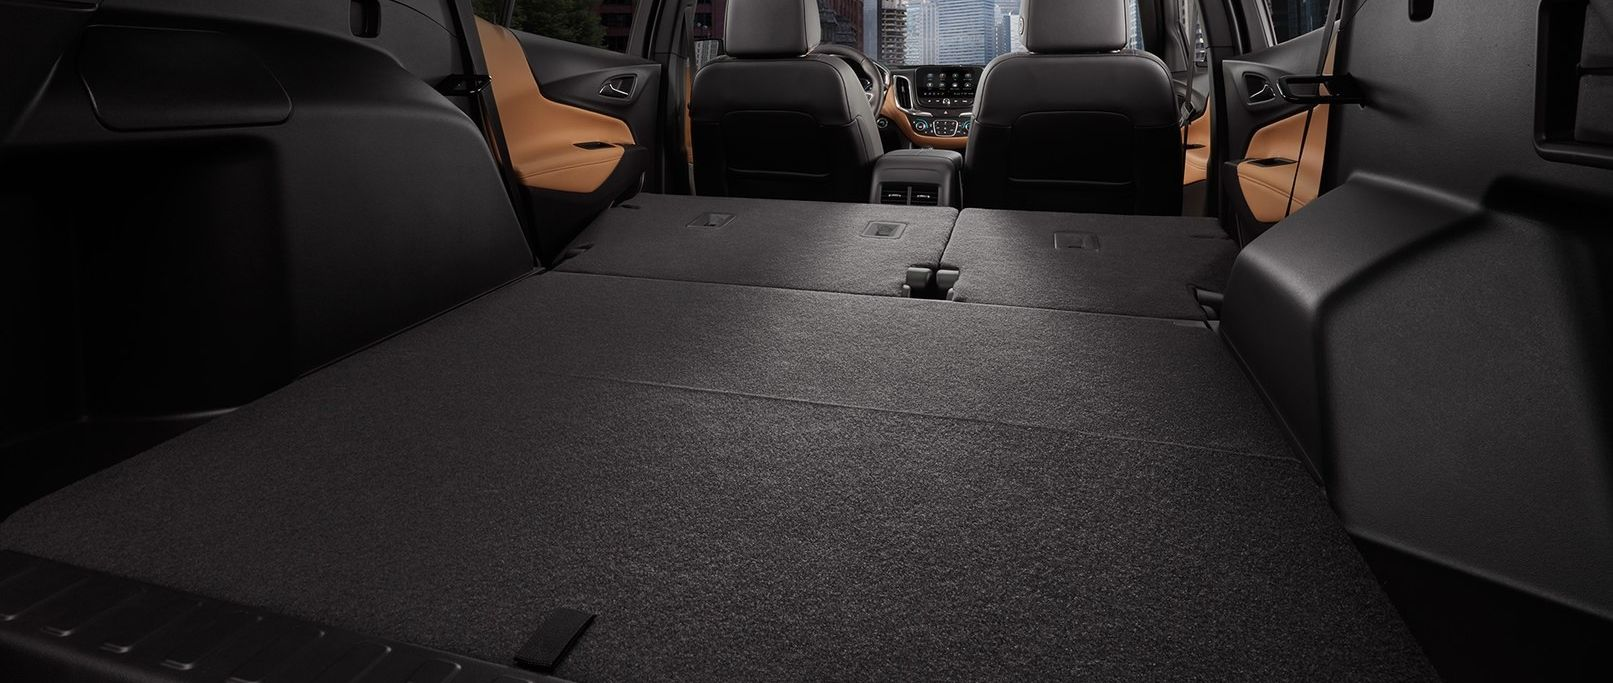 2019 Chevrolet Equinox Cargo Room